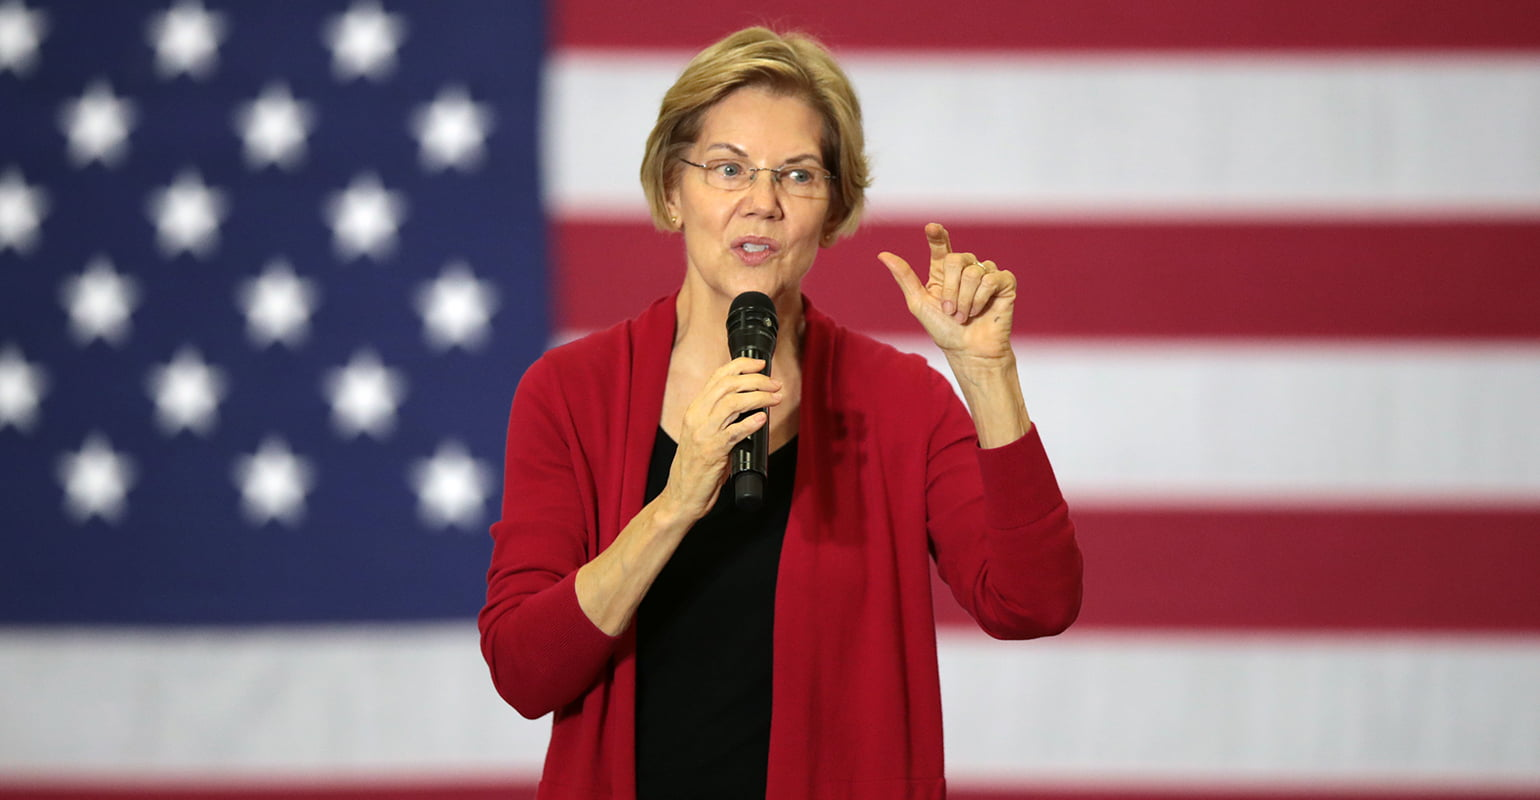 Warren's Wealth Tax Could Drive Billionaires to Funds She Hates